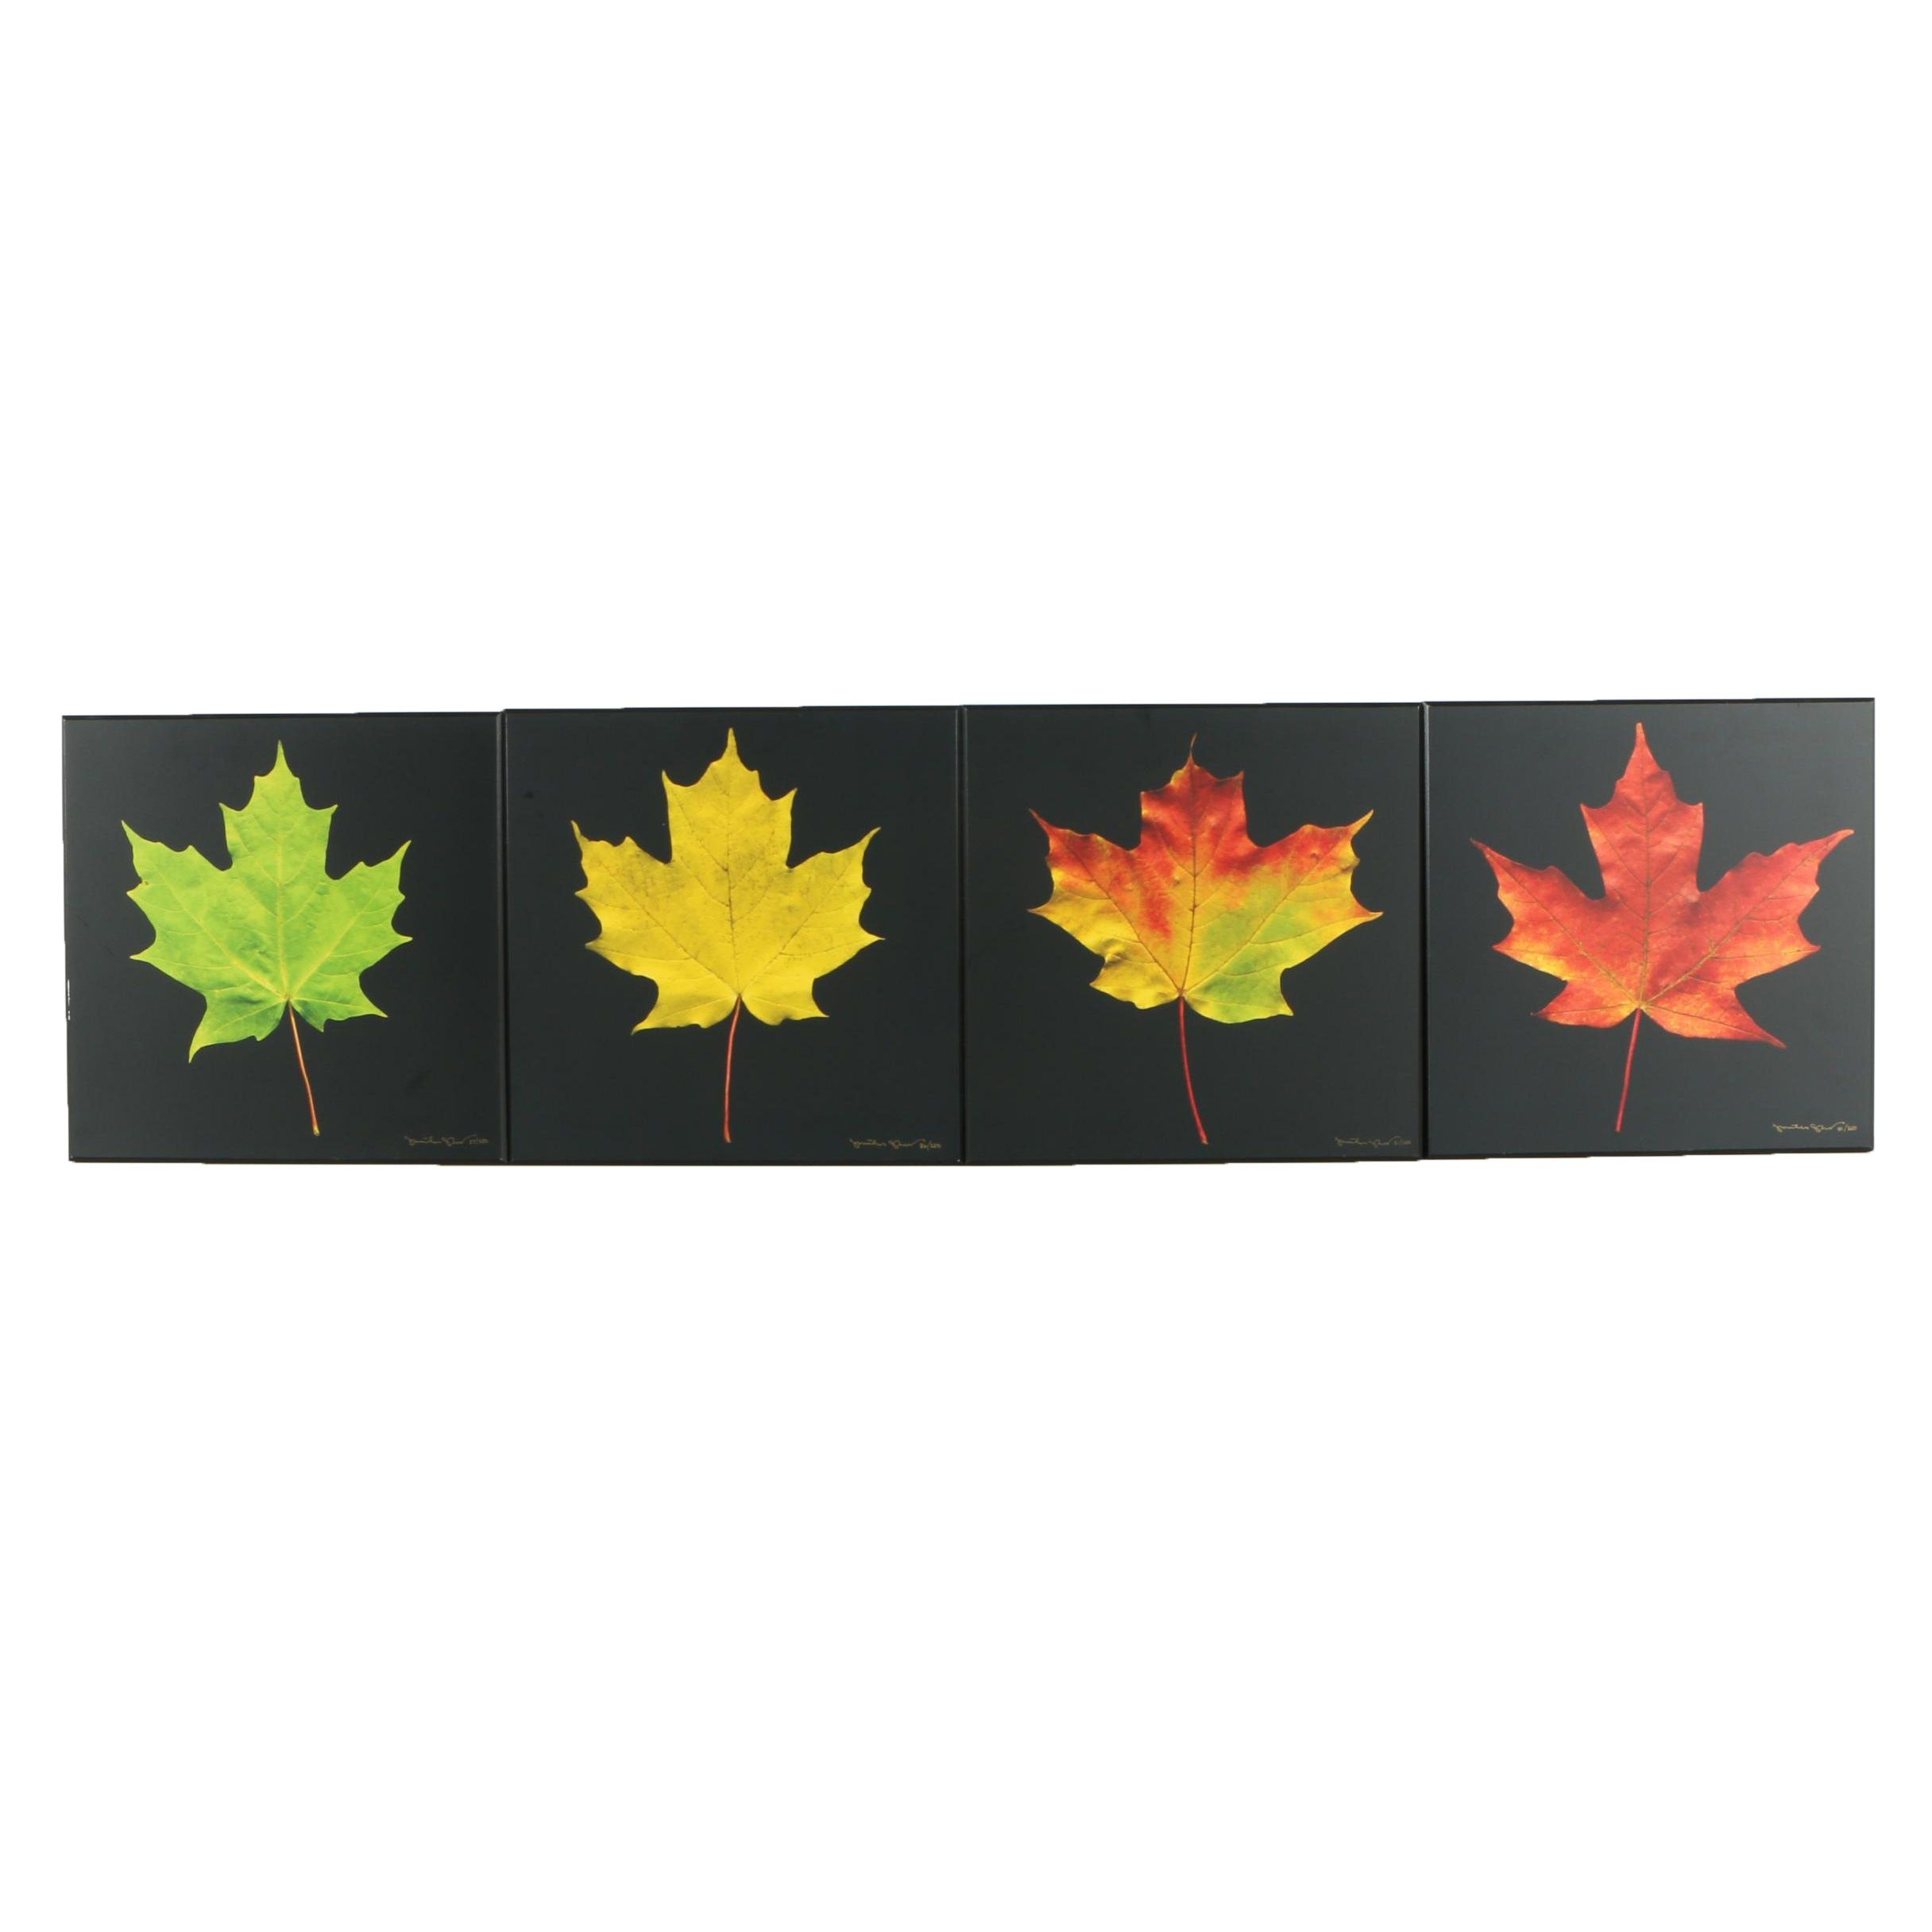 Jonathan Shuff Limited Edition Giclées of Maple Leaves